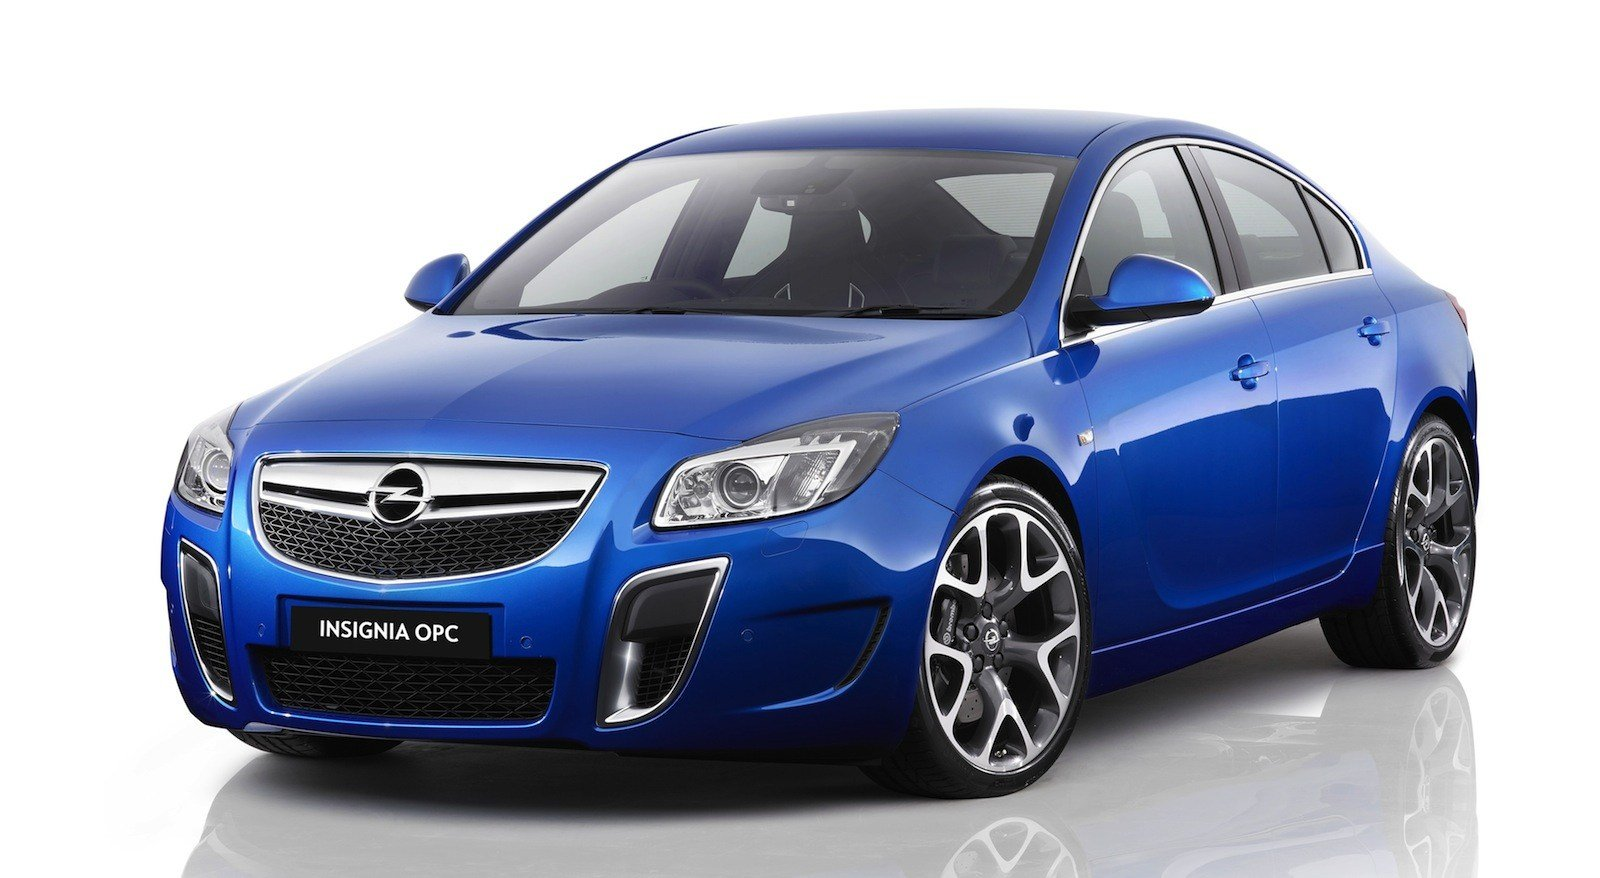 Latest Opel Insignia Corsa Opc Models Confirmed For 2013 Free Download